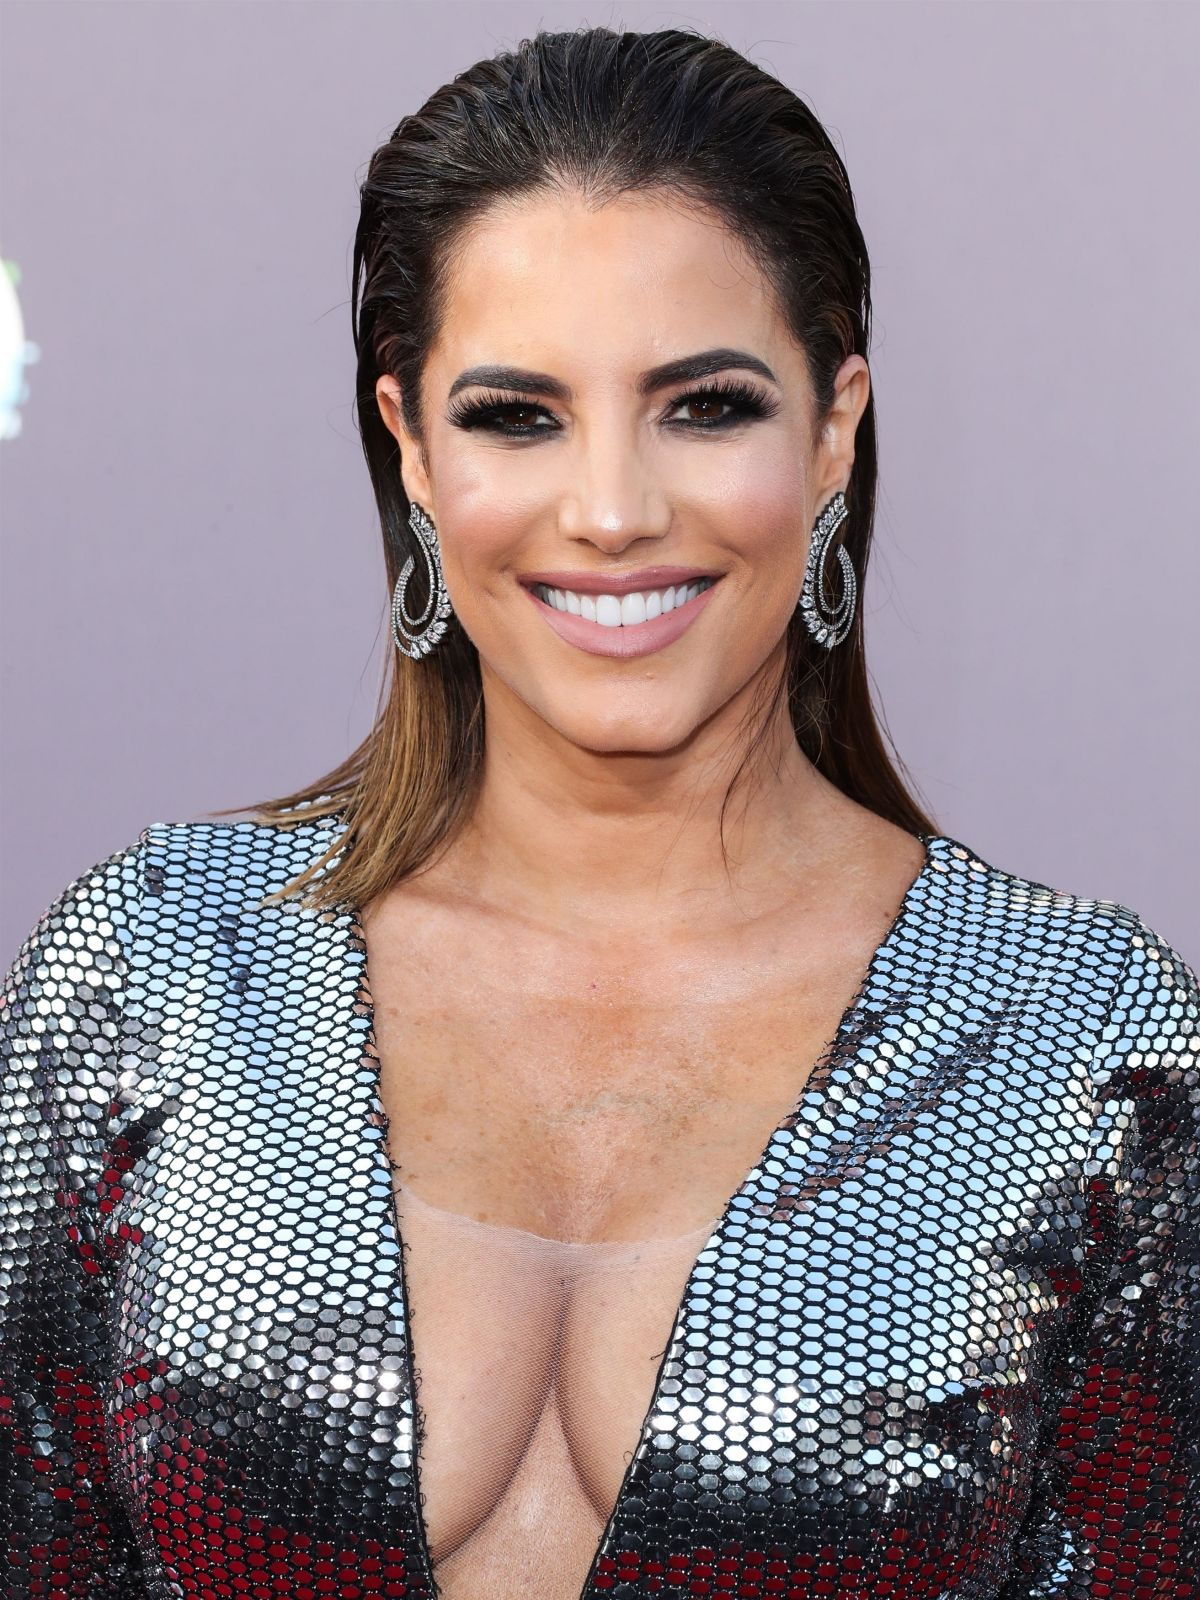 Gaby Espino At Latin American Music Awards 2018 In Los Angeles